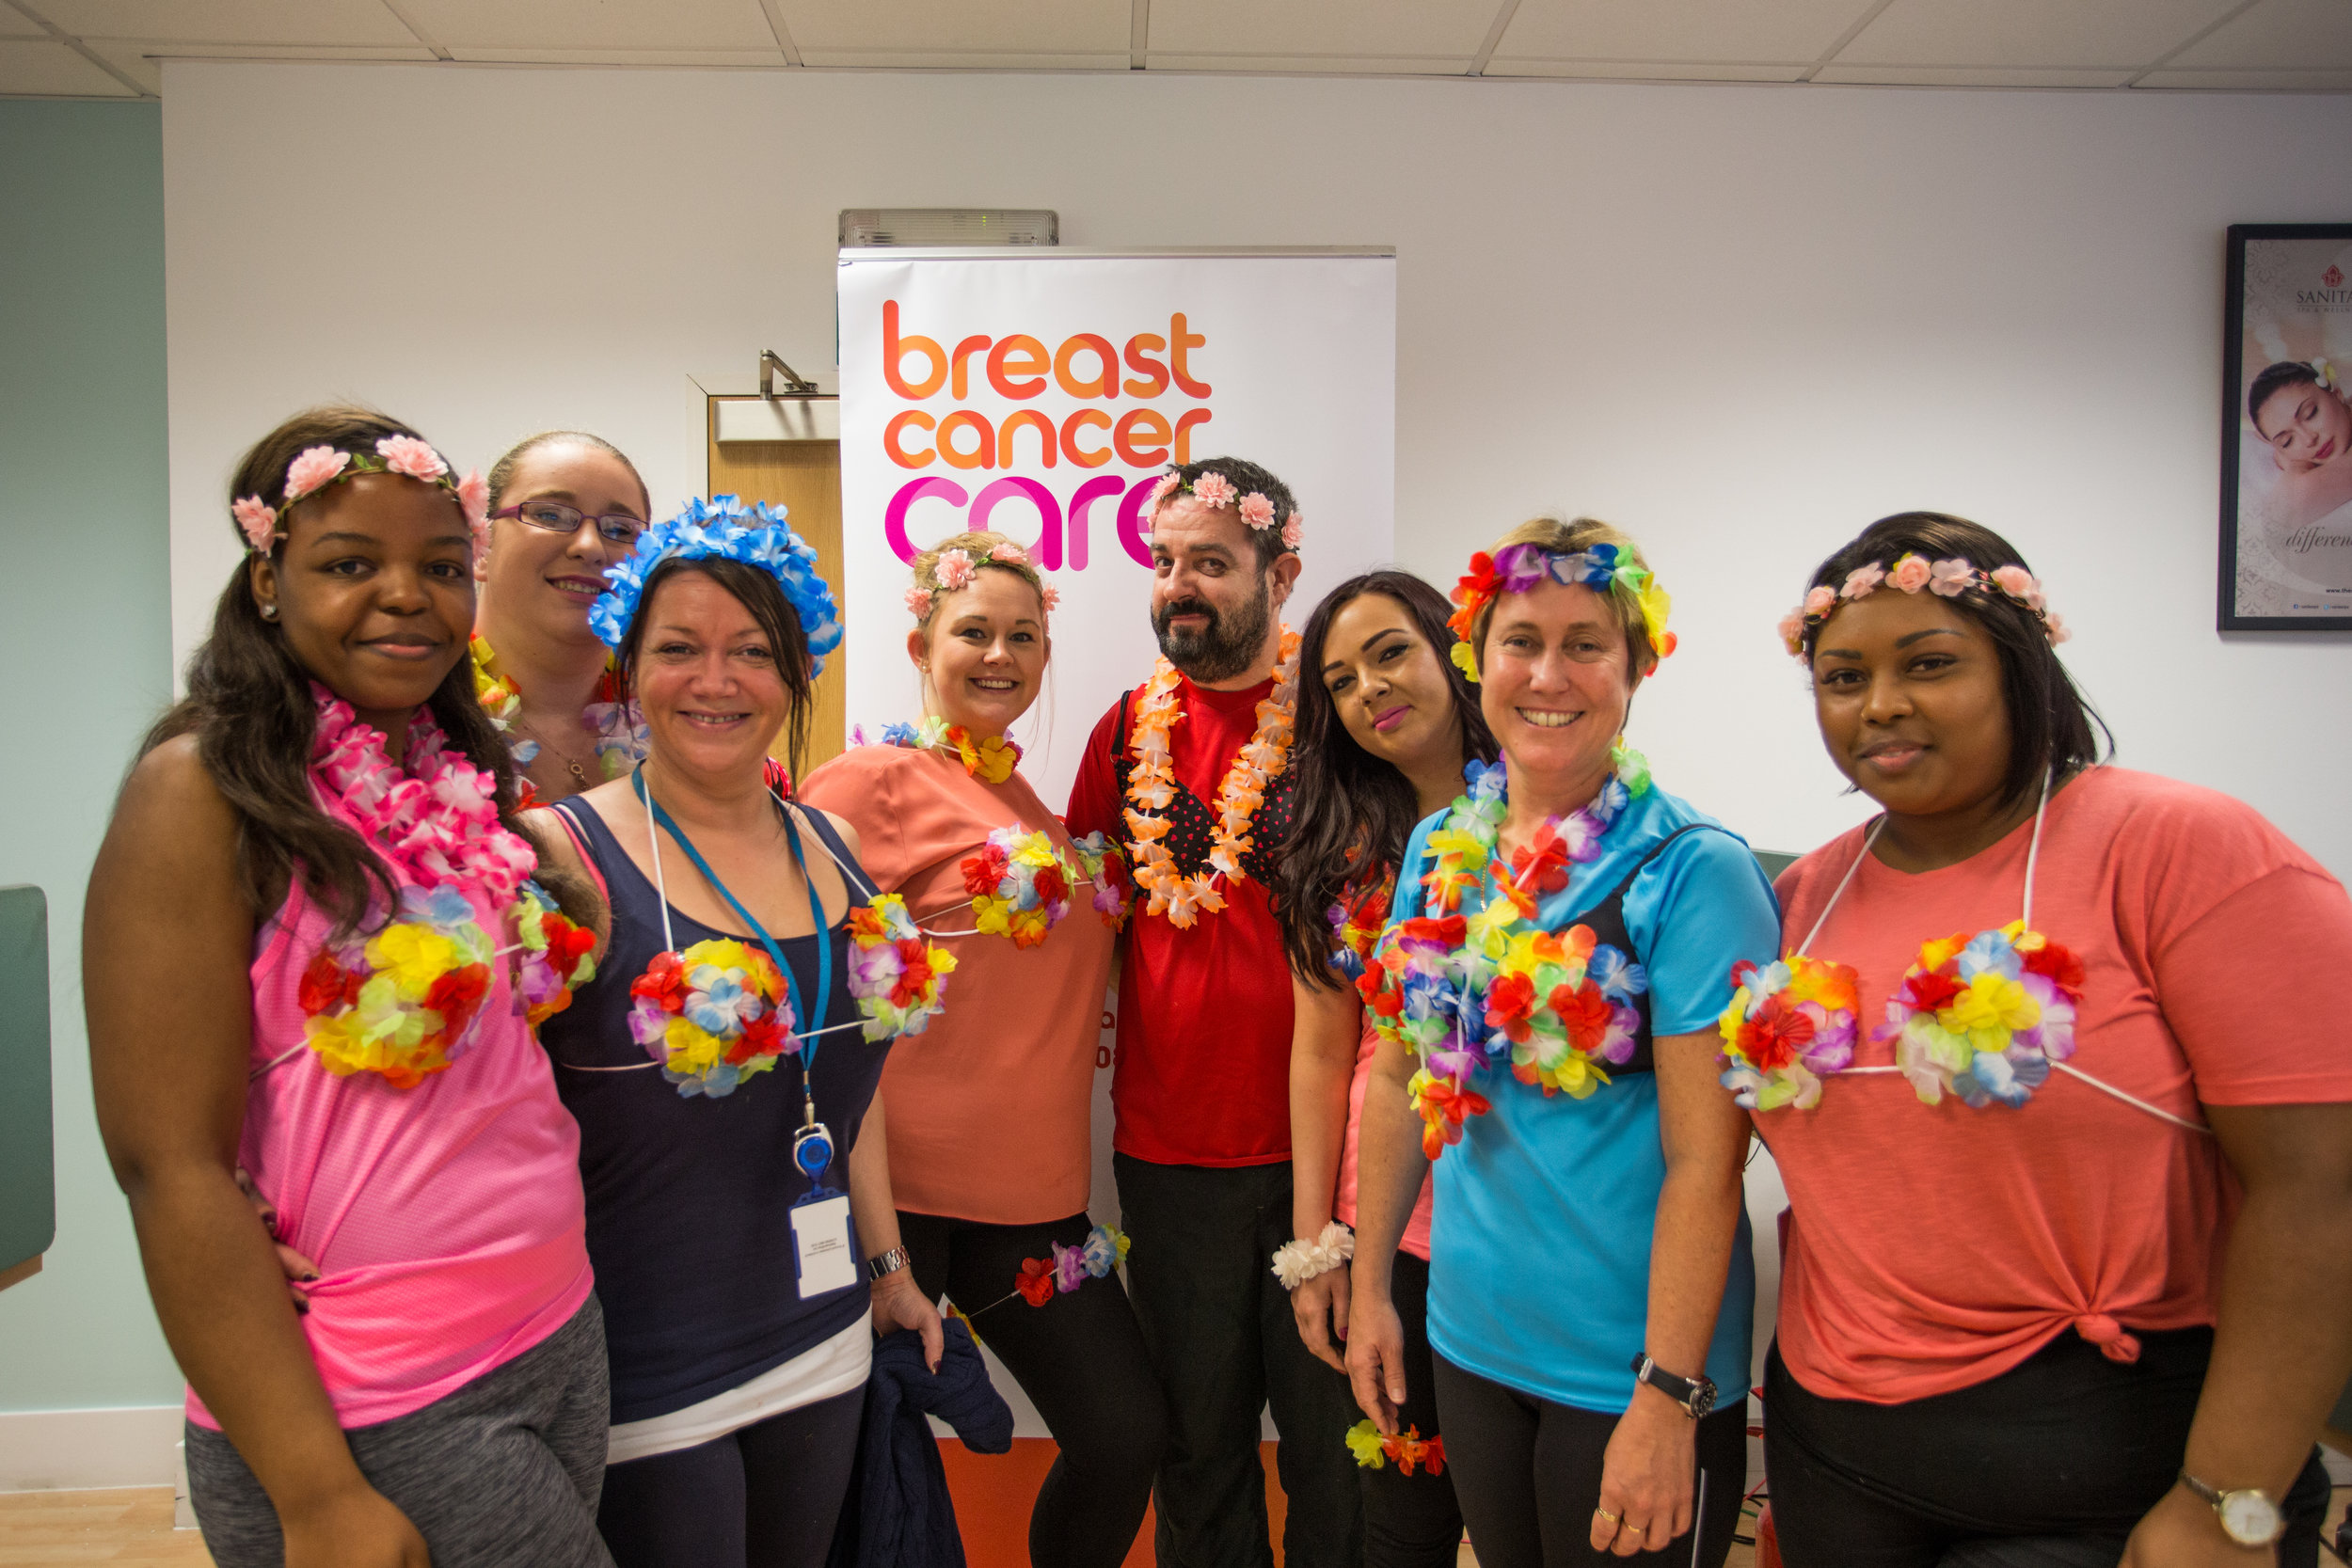 Team Fundraising for Breast Cancer Care